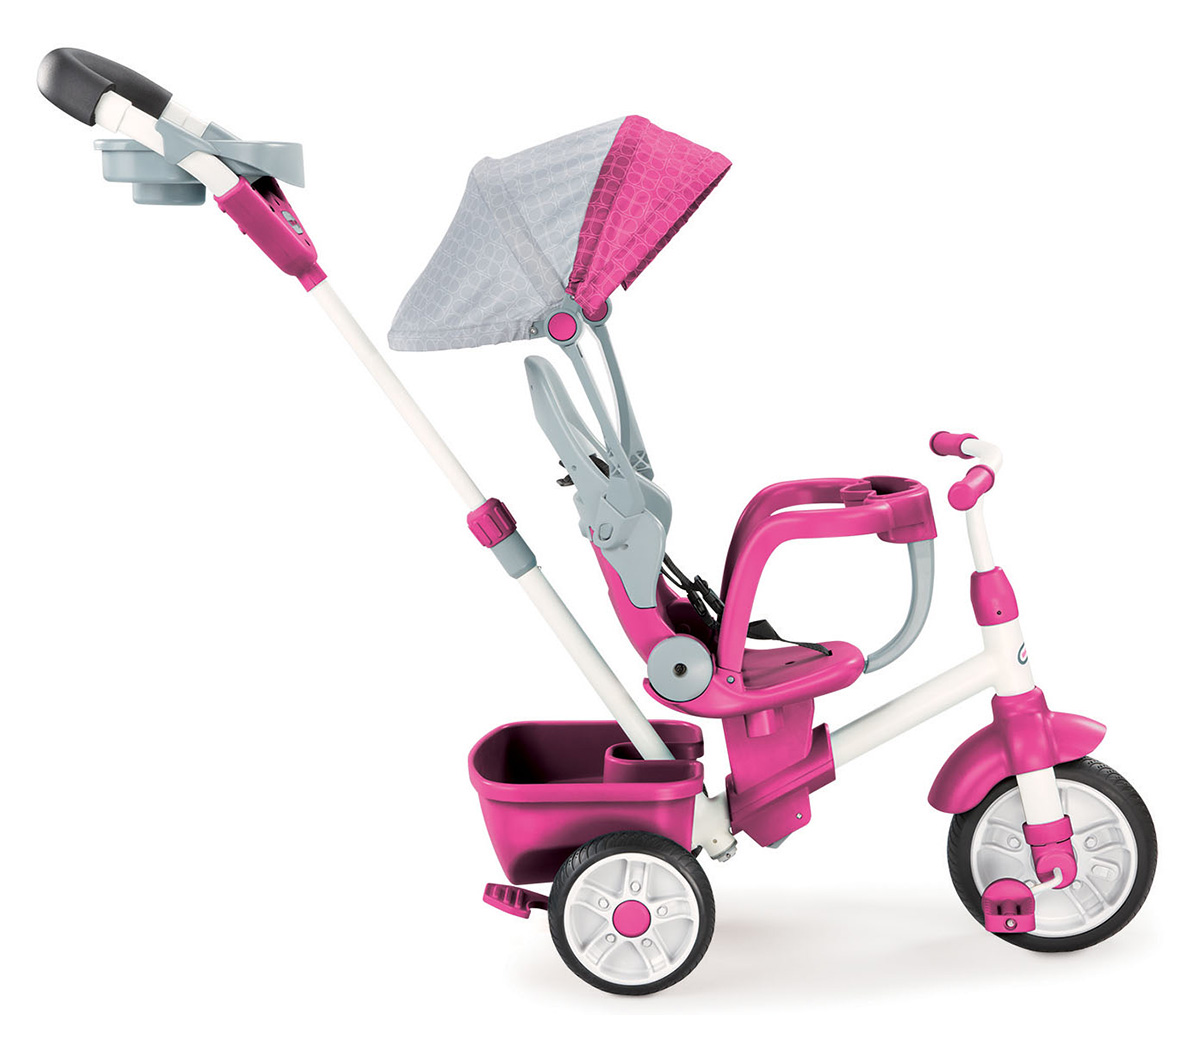 Perfect-Fit-4-in-1-Trike-pink-1-1